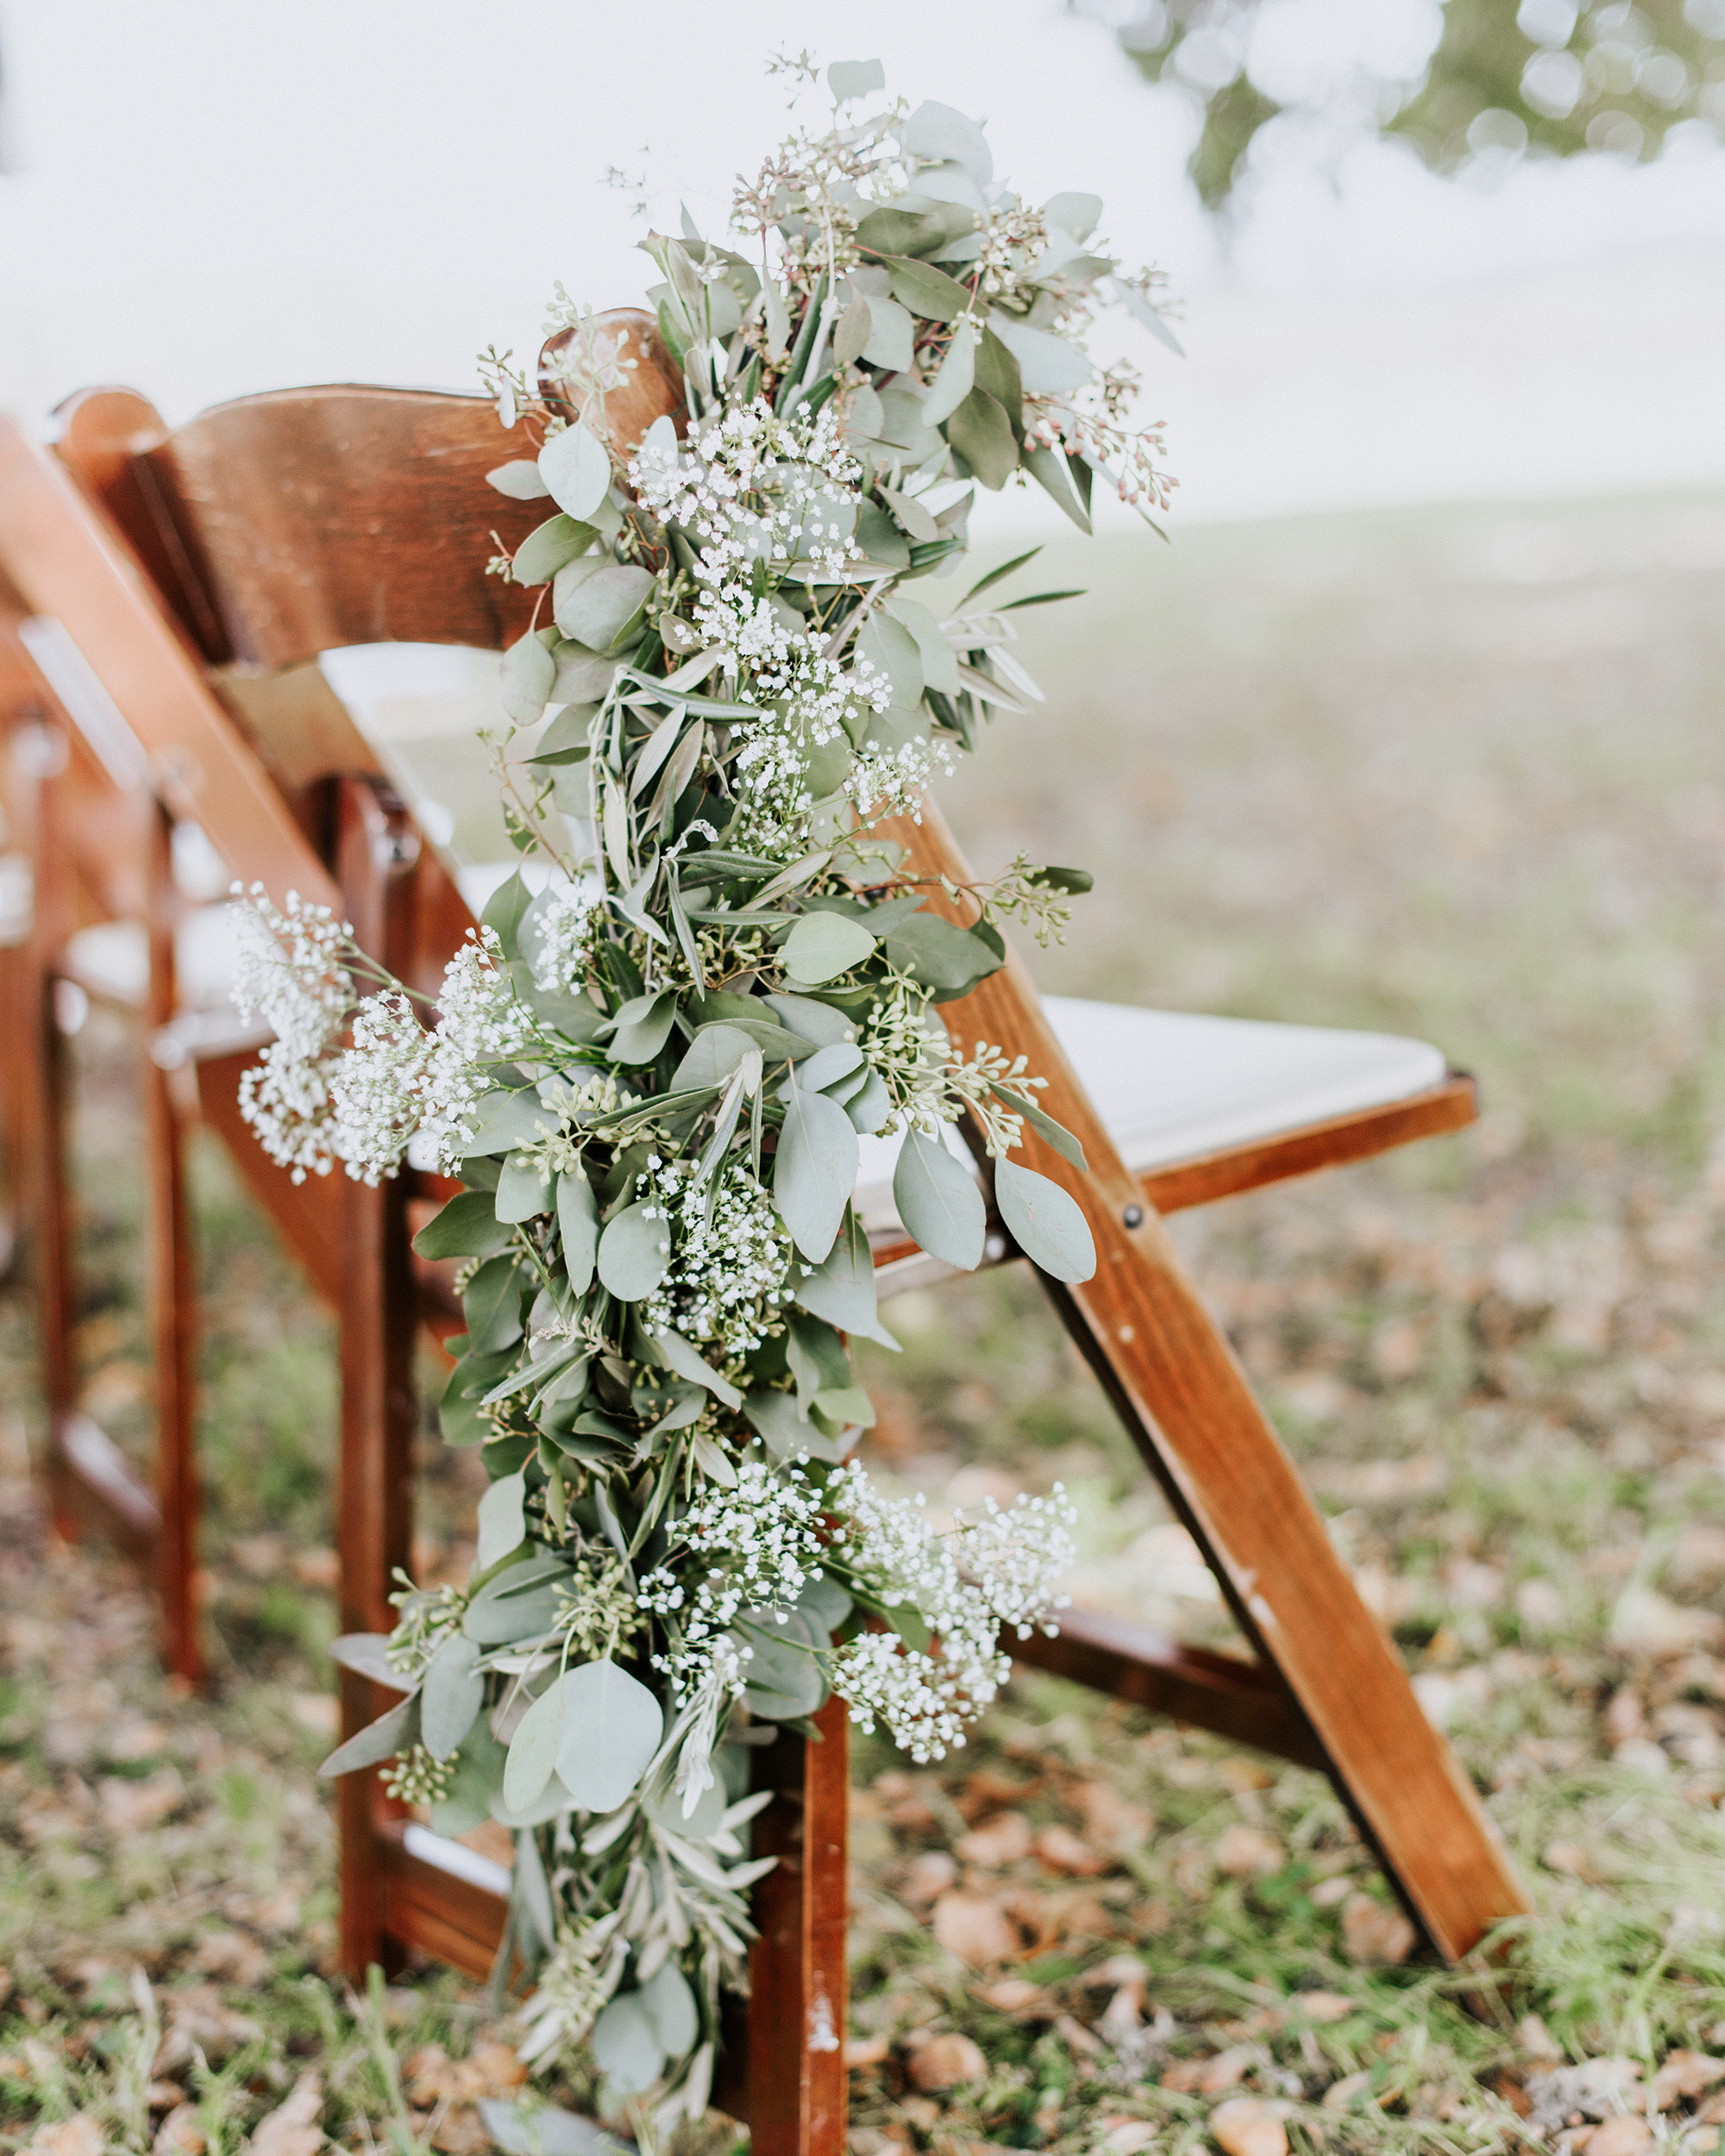 green eucalyptus with distressed wooden chairs outdoors